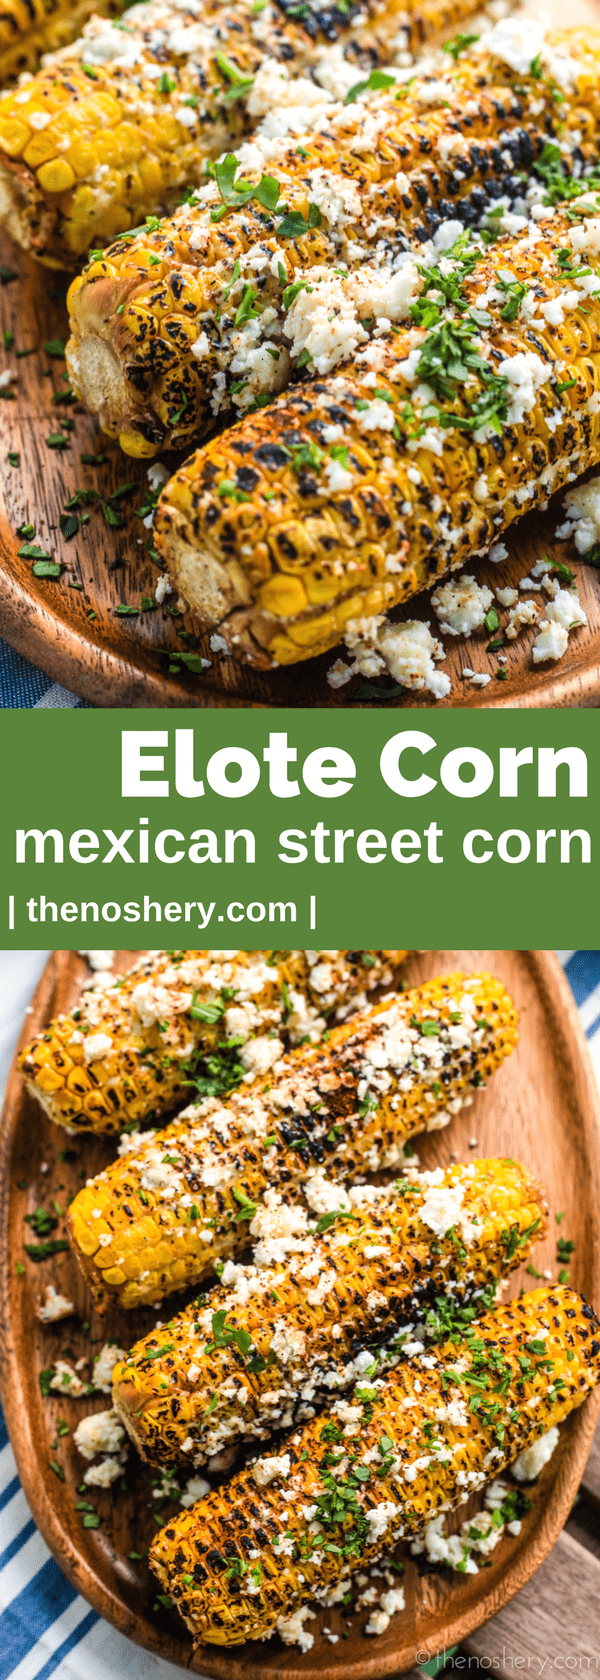 Elote Corn (Mexican Street Corn) | Elote corn is Mexican street corn is roasted over an open grill & coated with salt, chile powder, butter, cotija, lime juice, & mayonnaise or crema fresca. | The Noshery